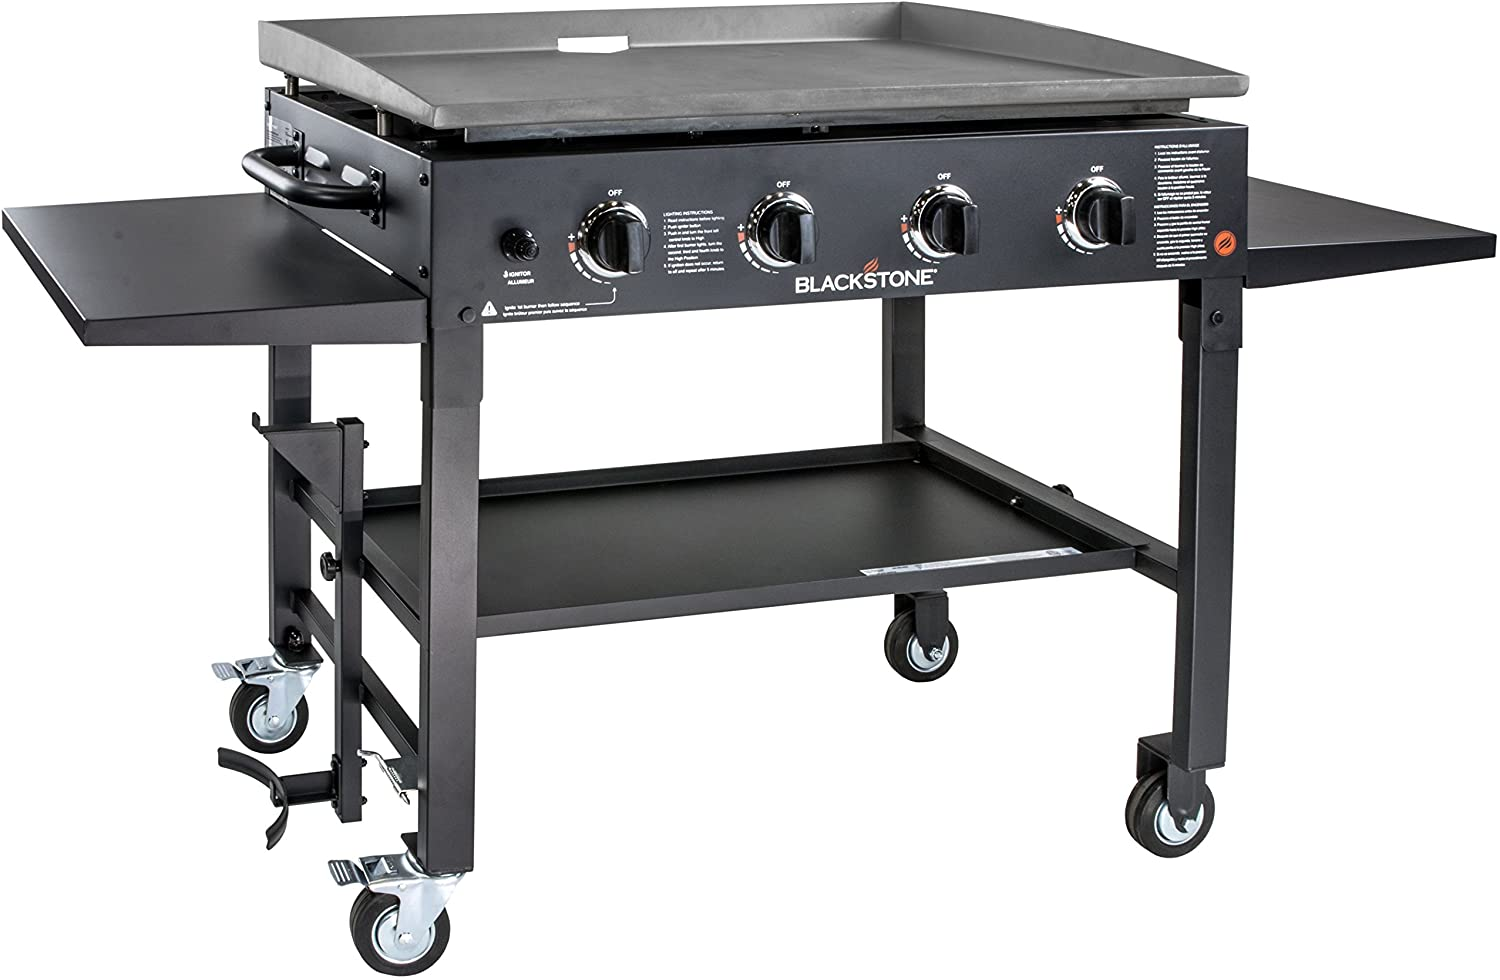 Blackstone 1554 Station Propane Professional 36-Inch Outdoor Flat Top Griddle